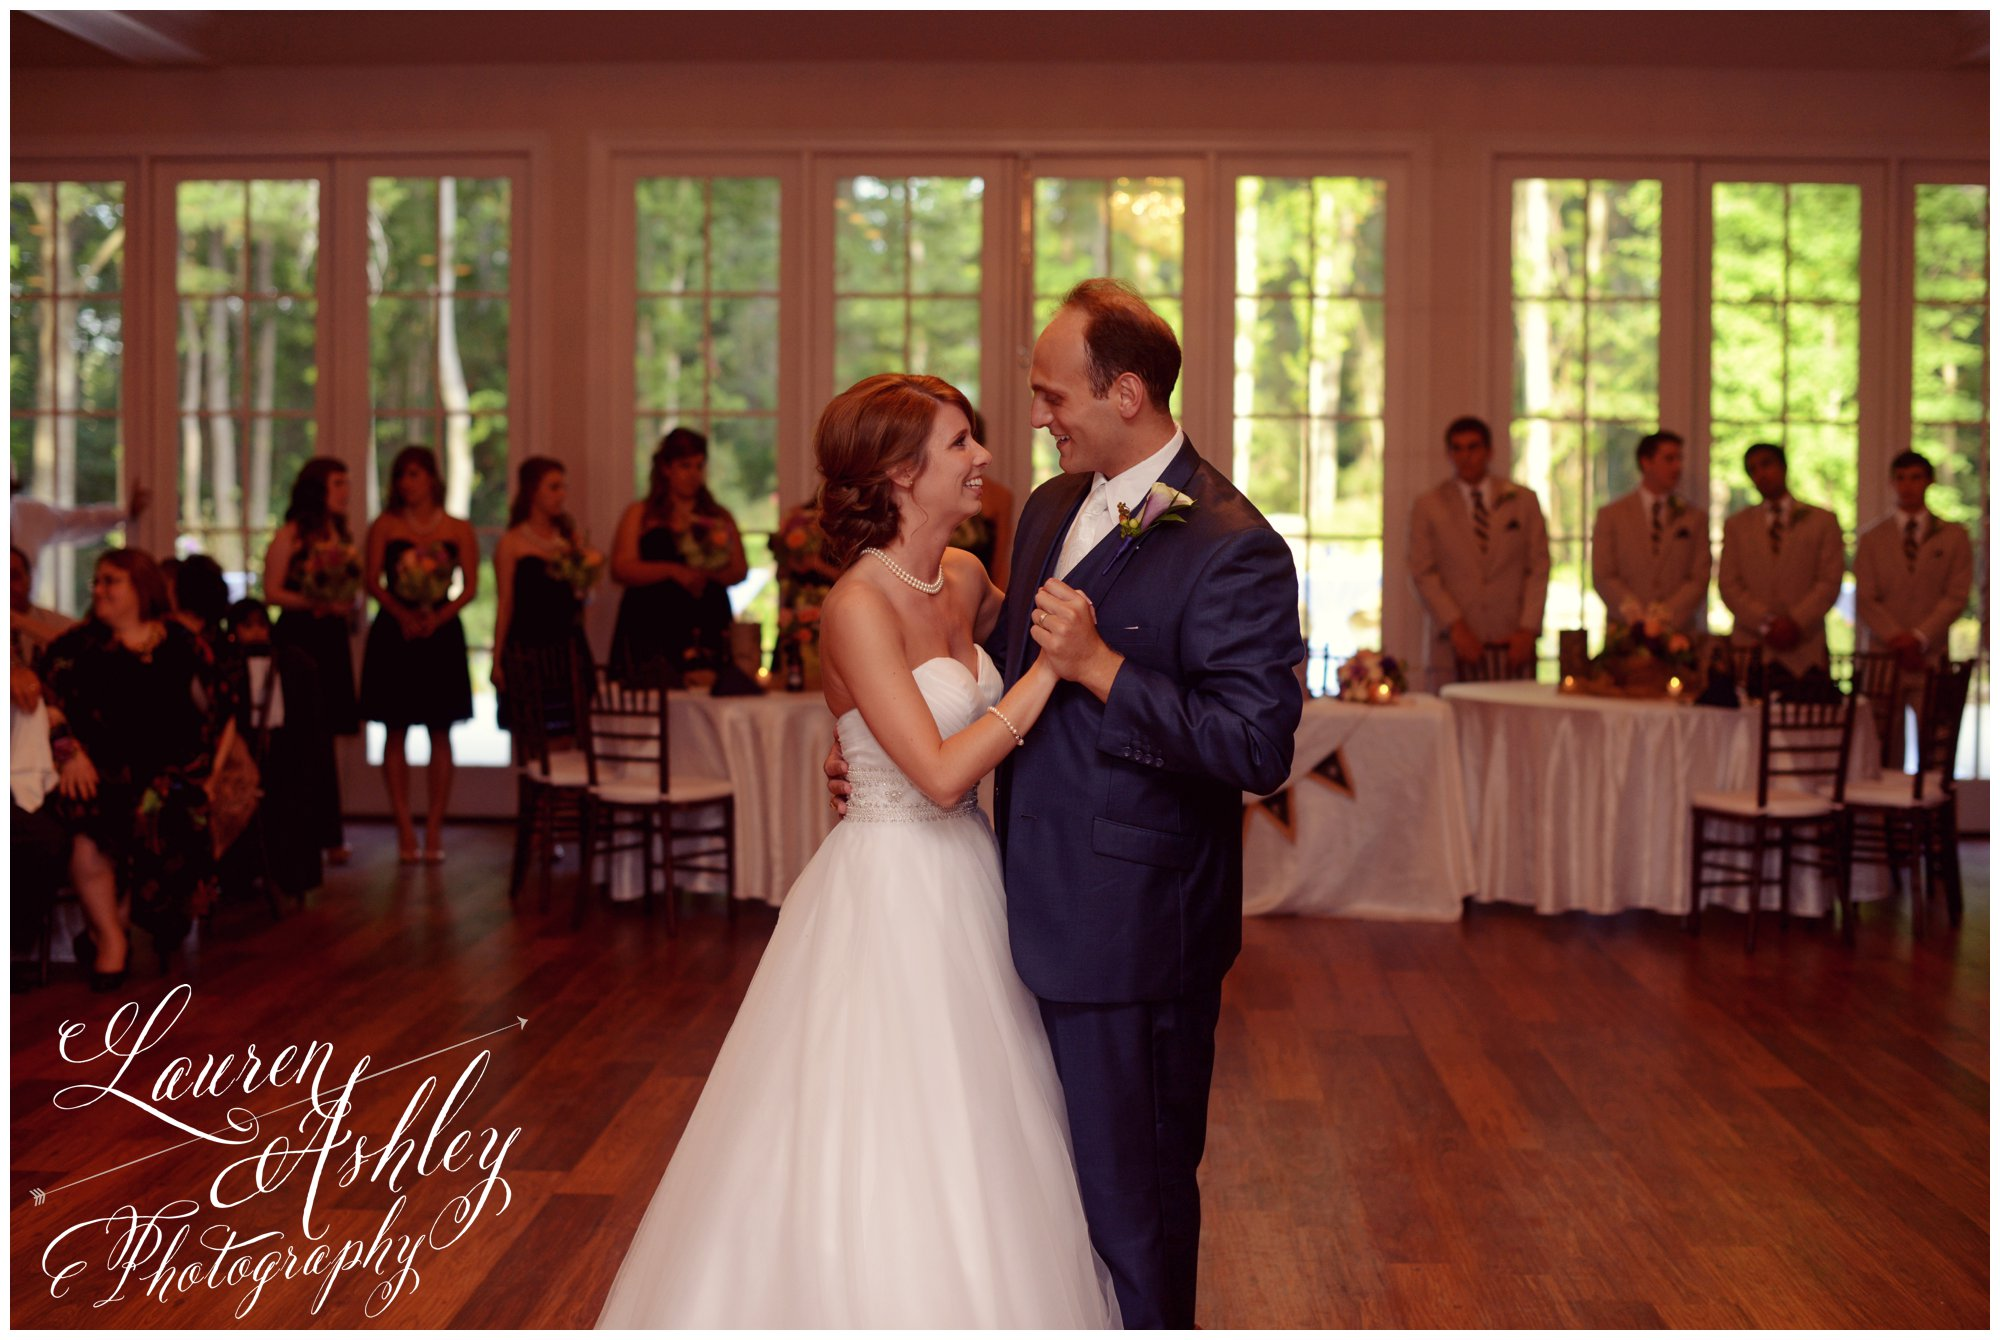 Wedding Venues In East Texas.The Arbor Venue The Arbor Where People Come Together